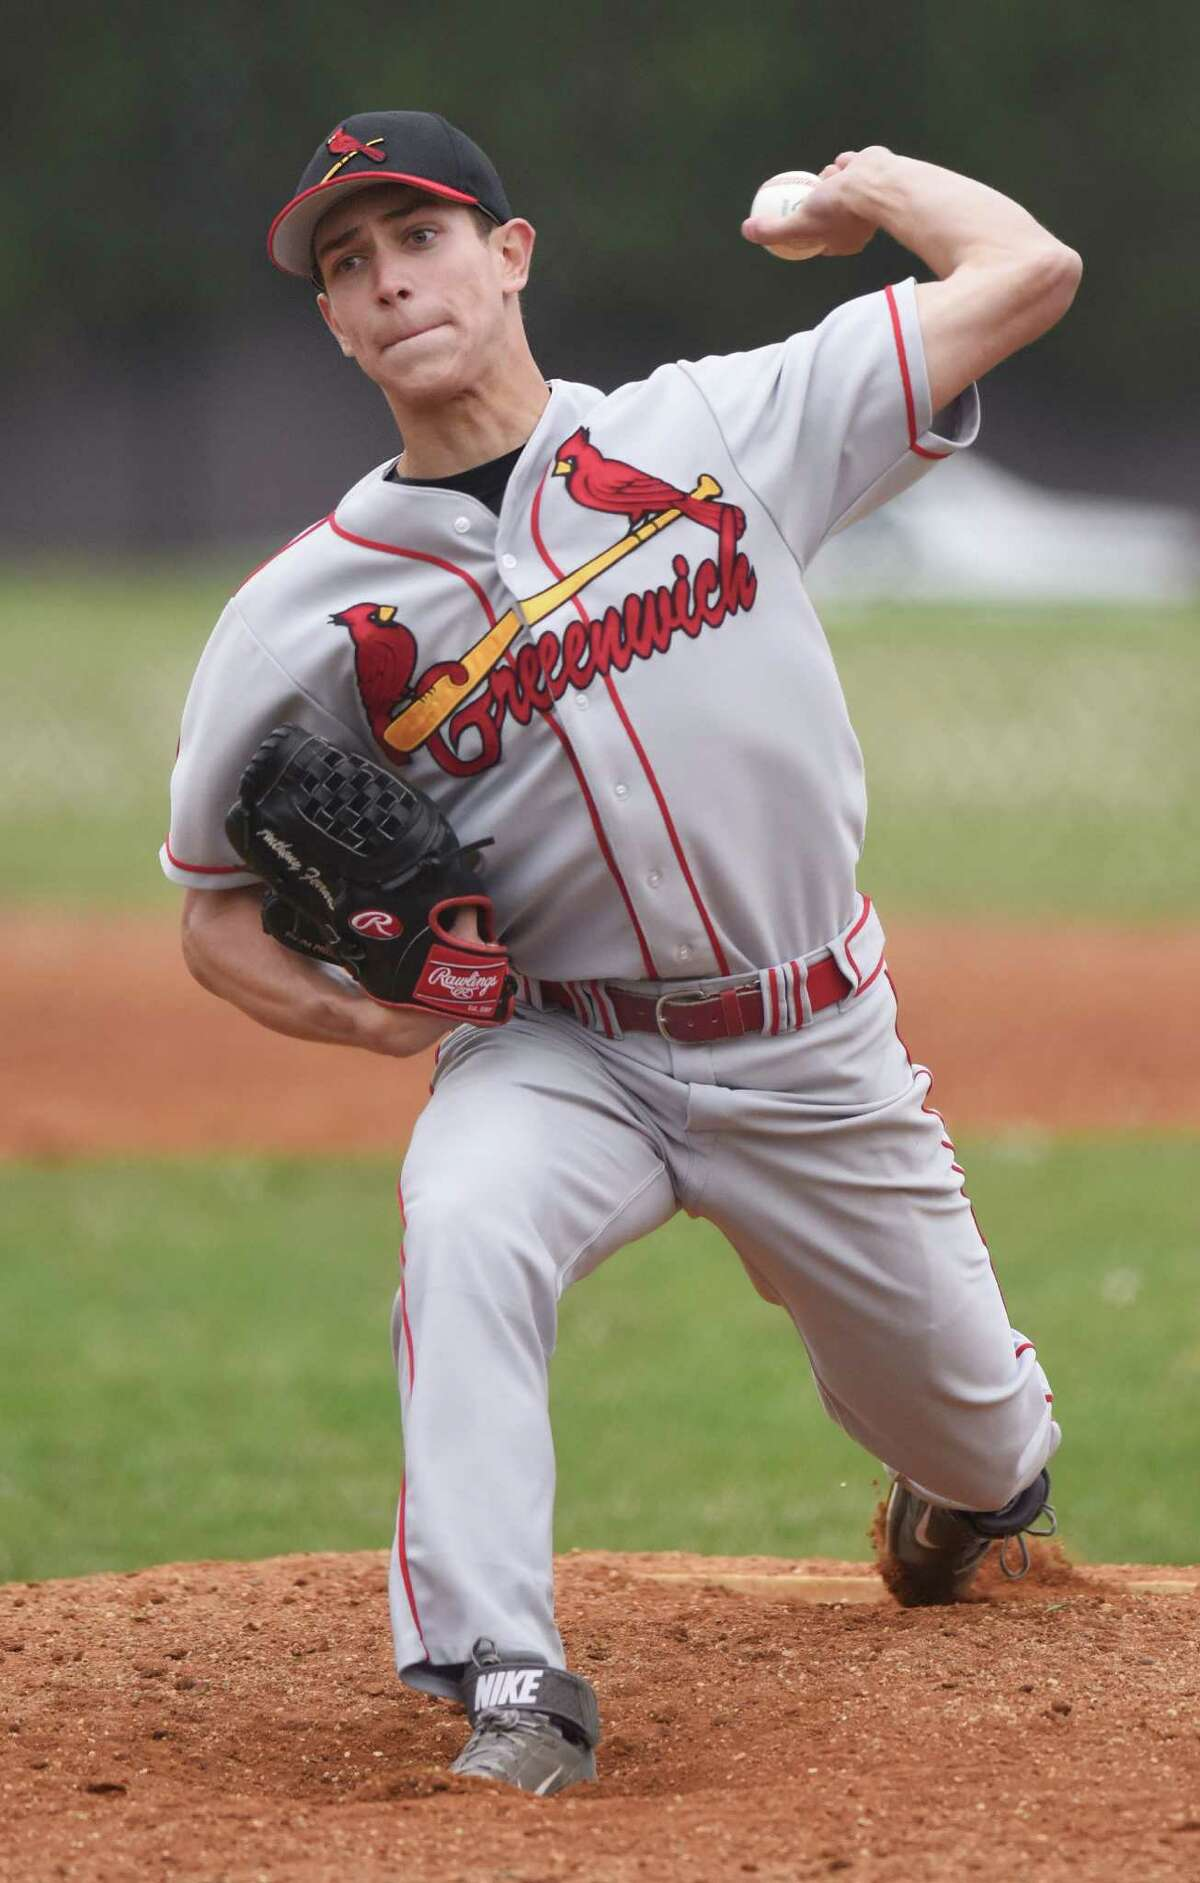 Greenwich pitcher Anthony Ferraro earned his first victory of the season on Monday, going 6 2/3 effective innings against Stamford.